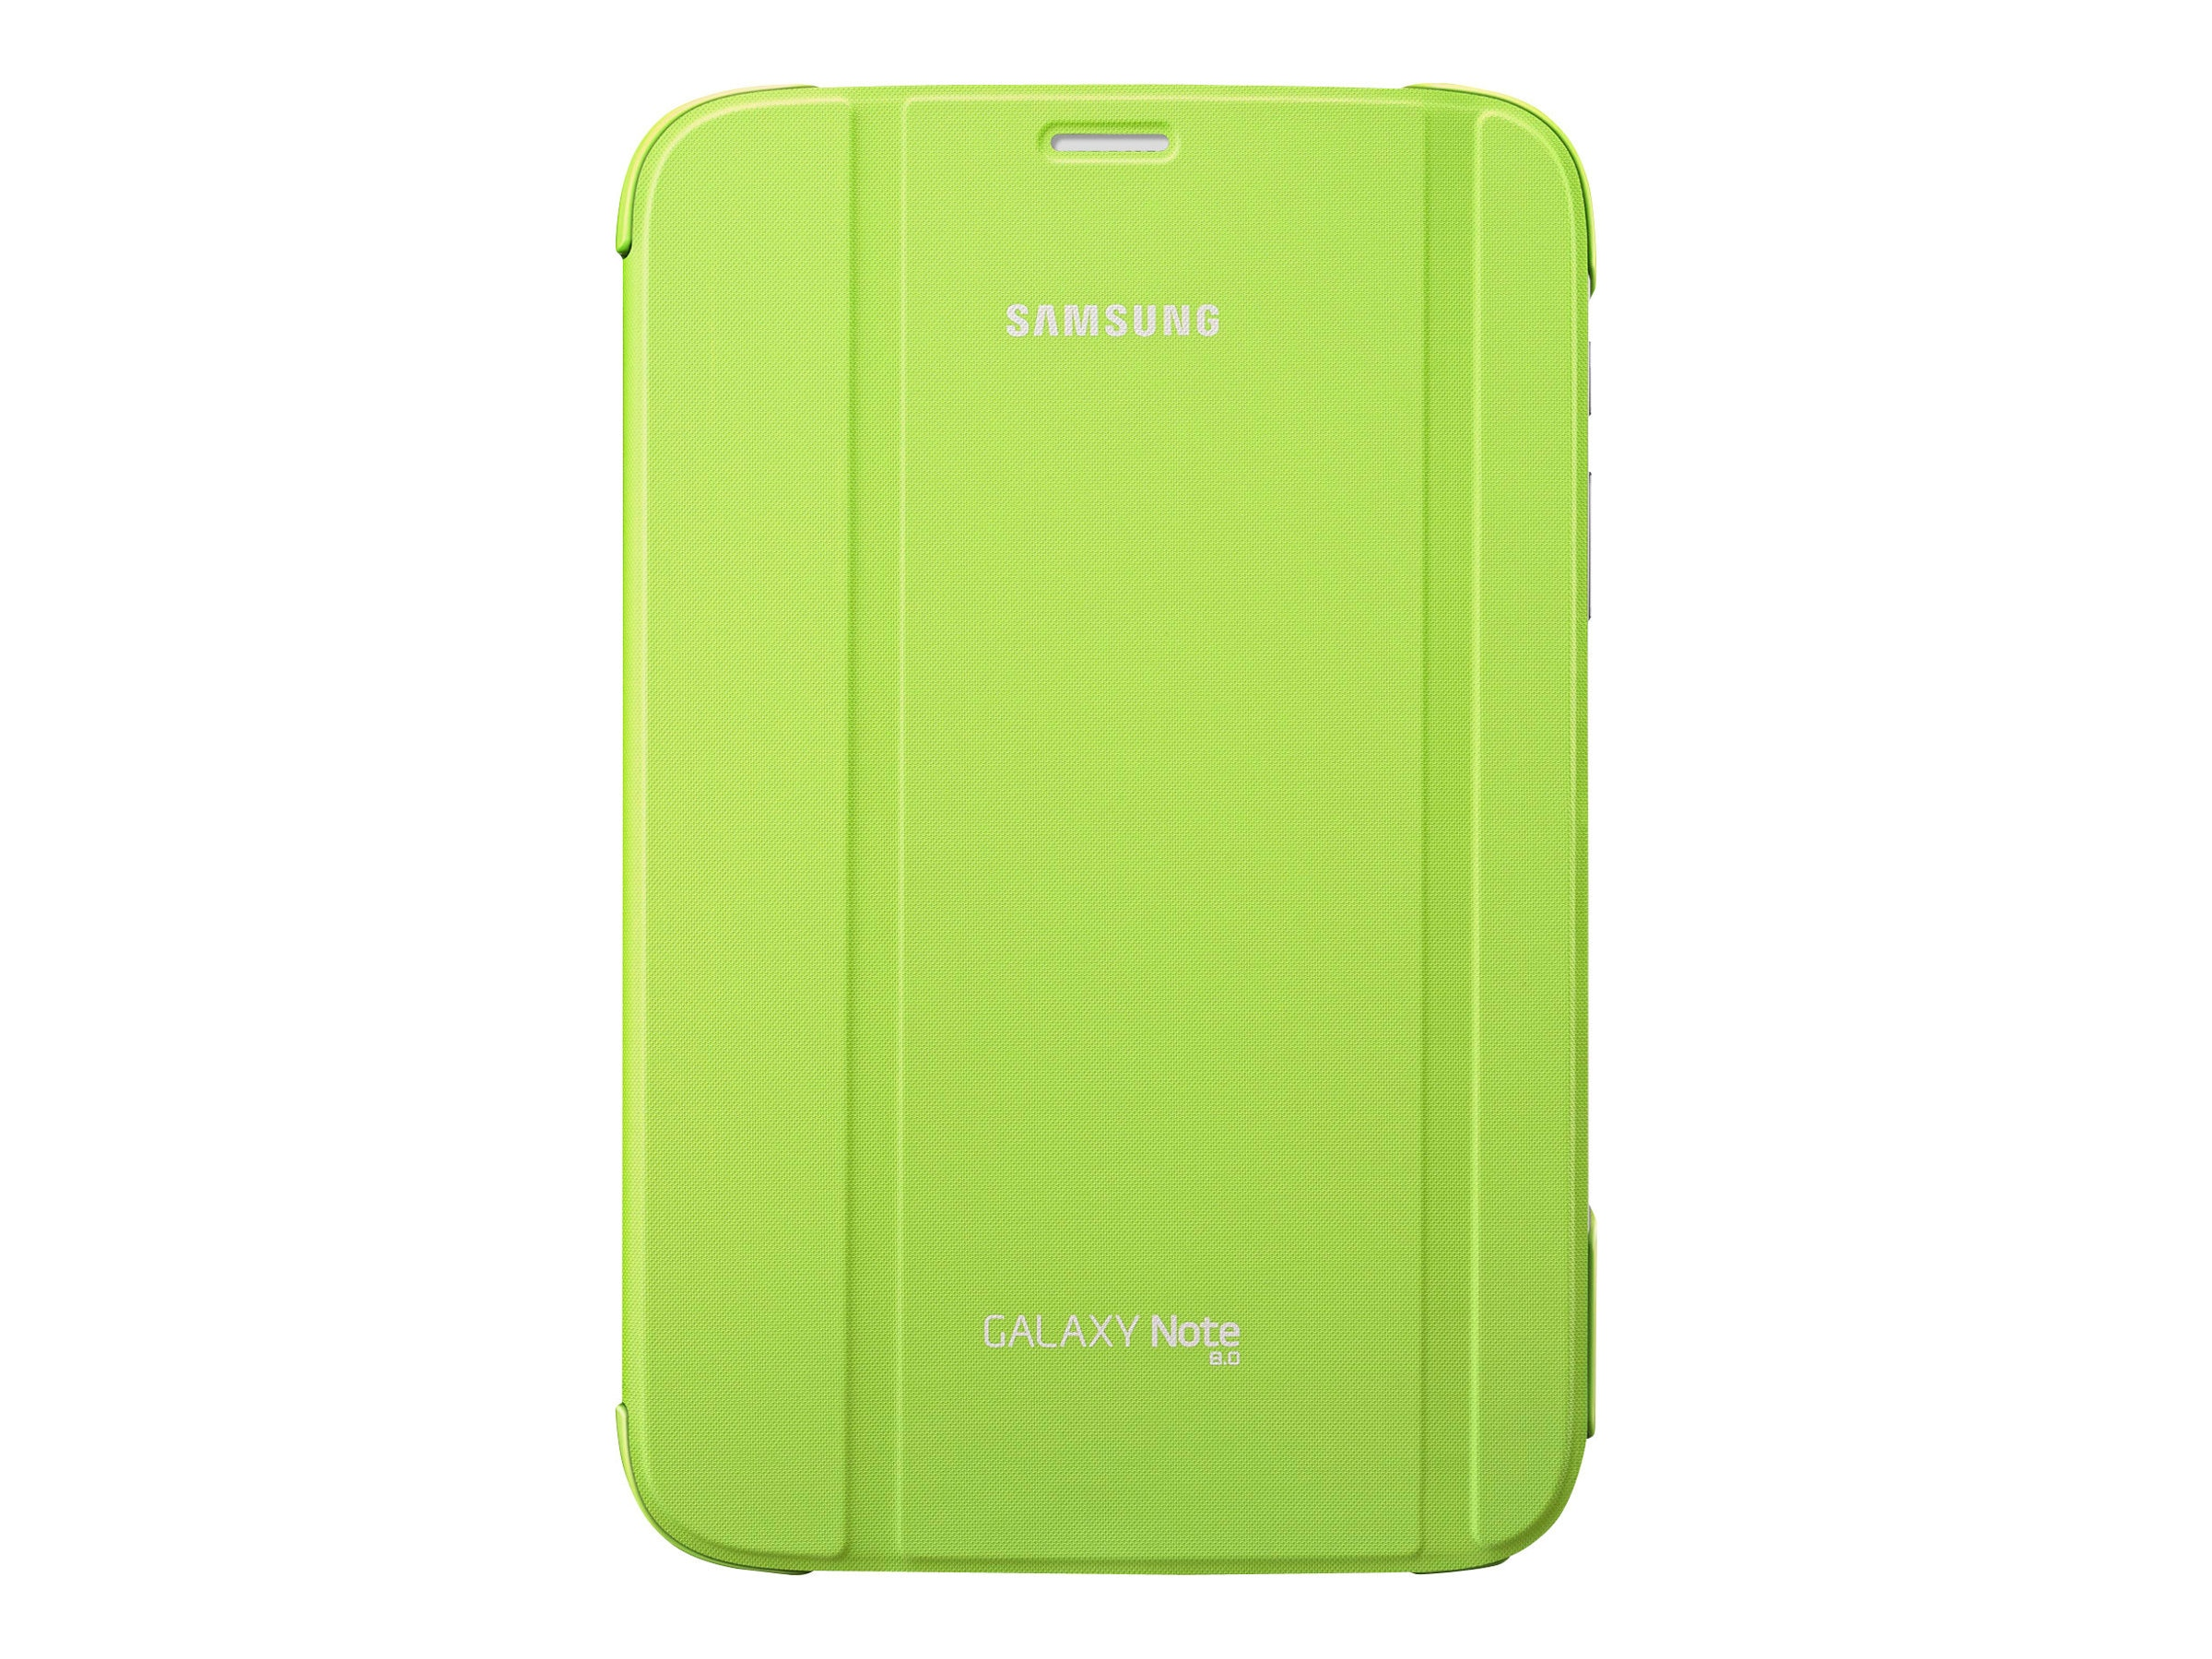 Samsung Book Cover for Galaxy Note 8.0, Green, EF-BN510BGEGUJ